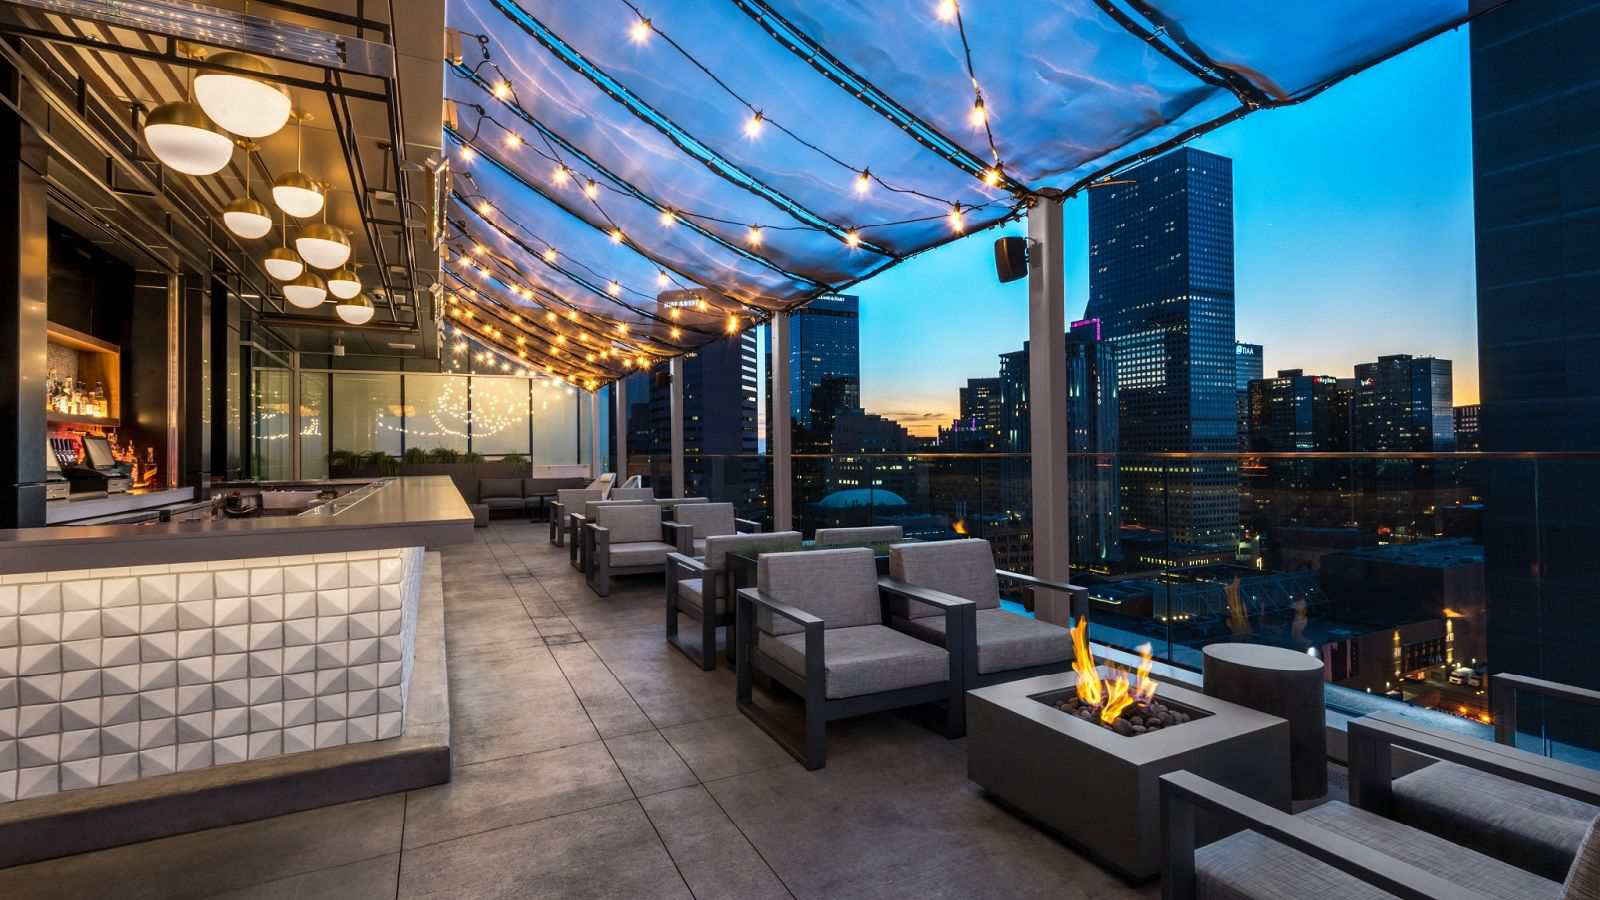 bourbon street hotels with balcony The 6 Hotels In Denver With The Best Views